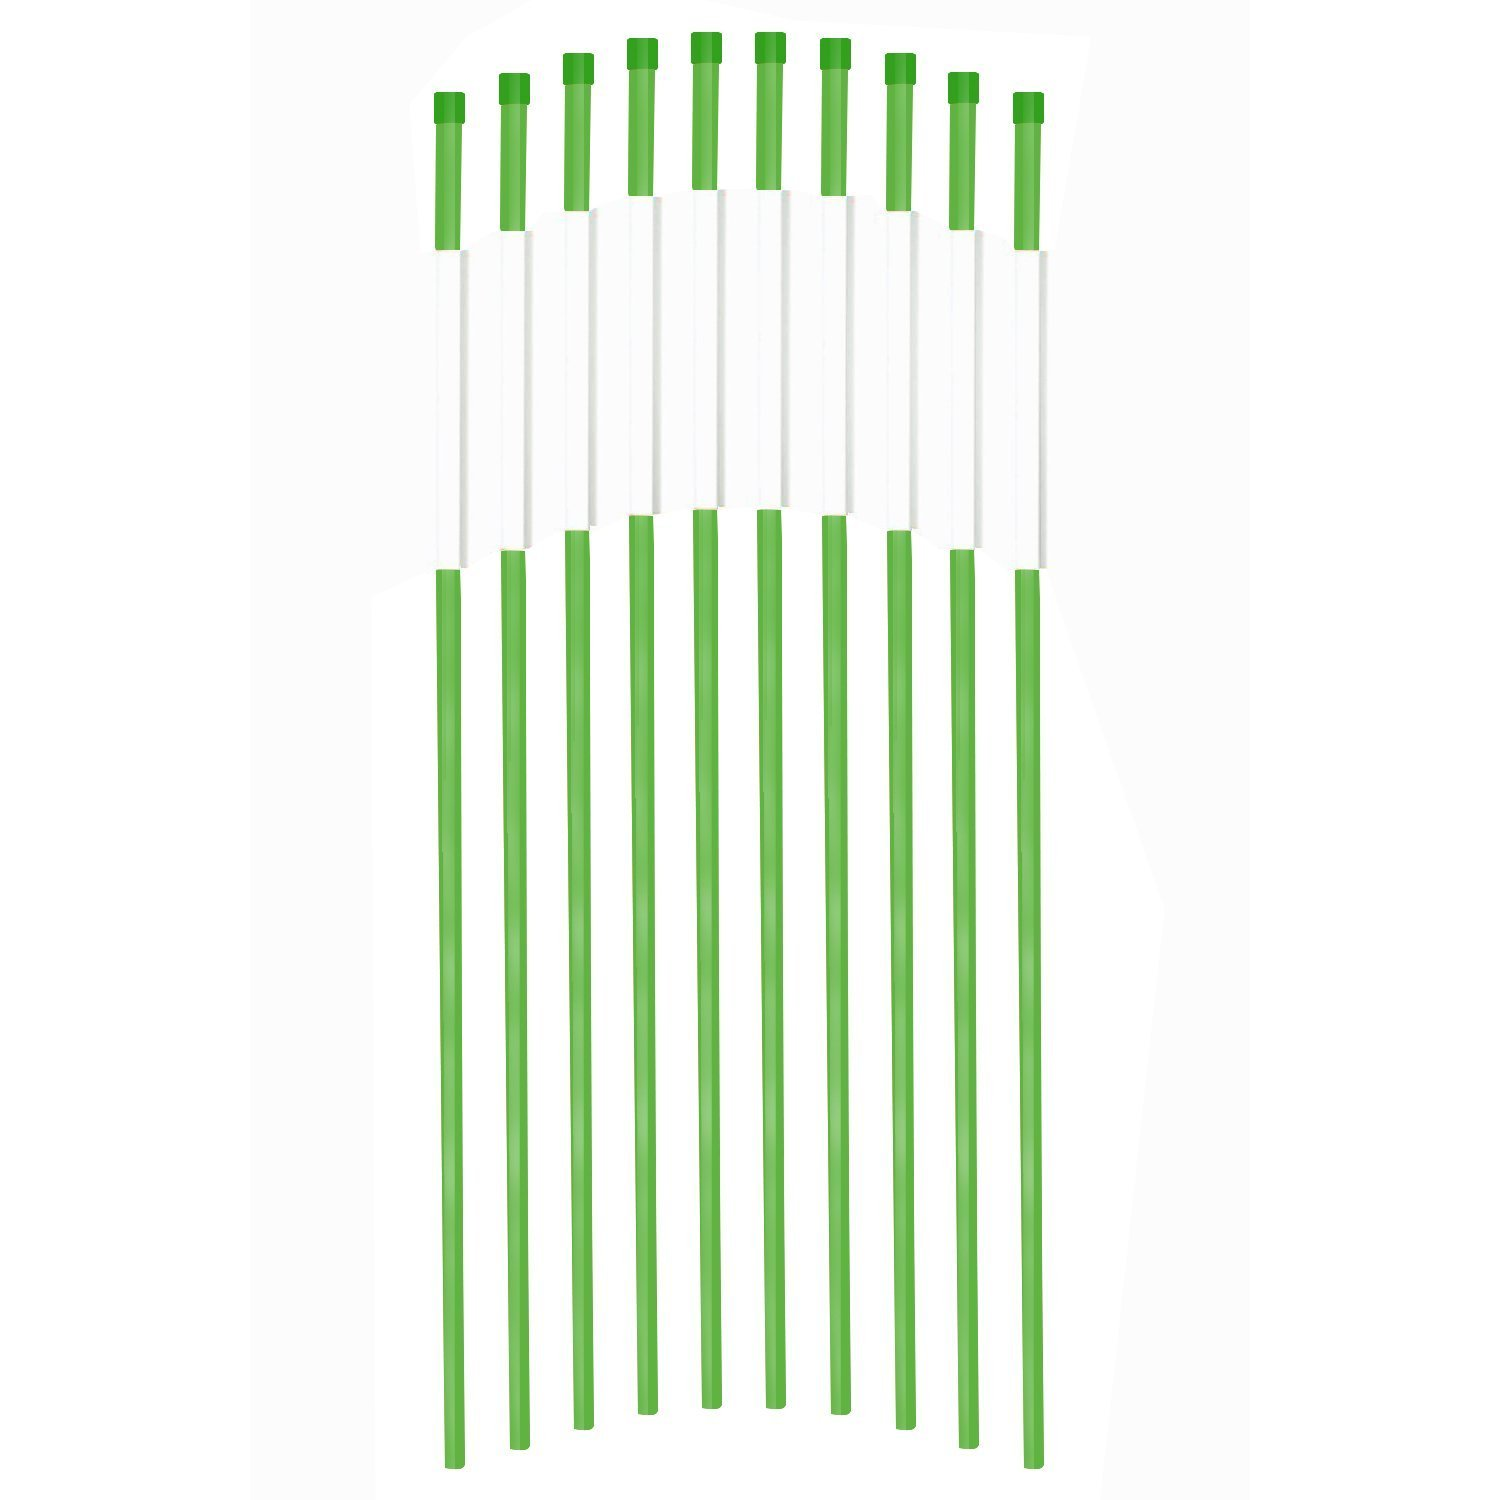 FiberMarker Reflective Driveway Markers 48-Inch Green 100-Pack Hollow 1/4-Inch Dia Driveway Poles for Easy Visibility at Night